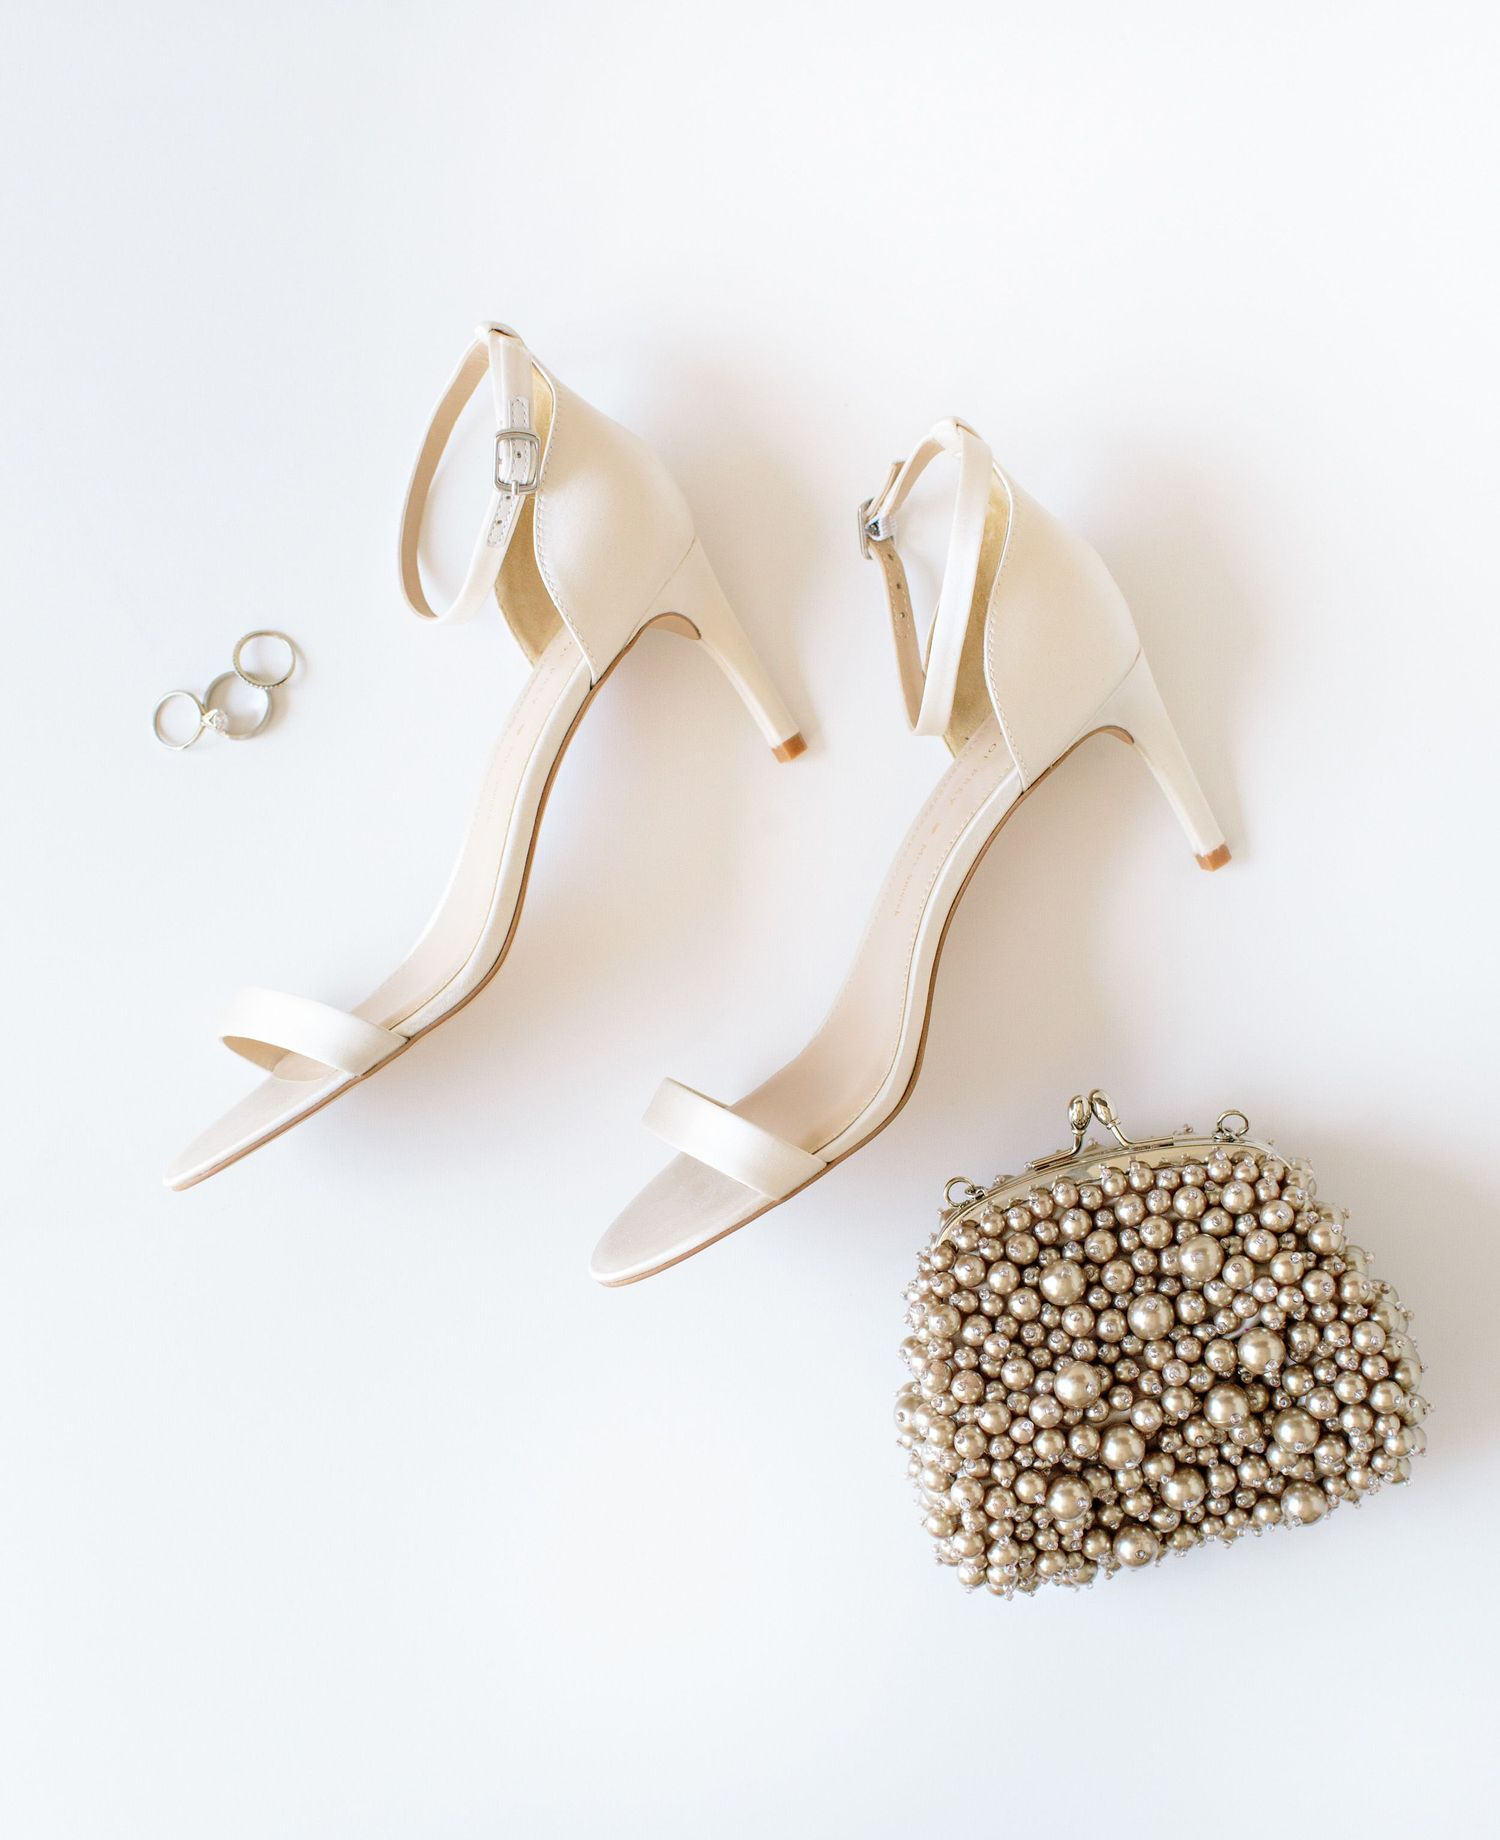 white shoes on white background with pearl purse and wedding rings